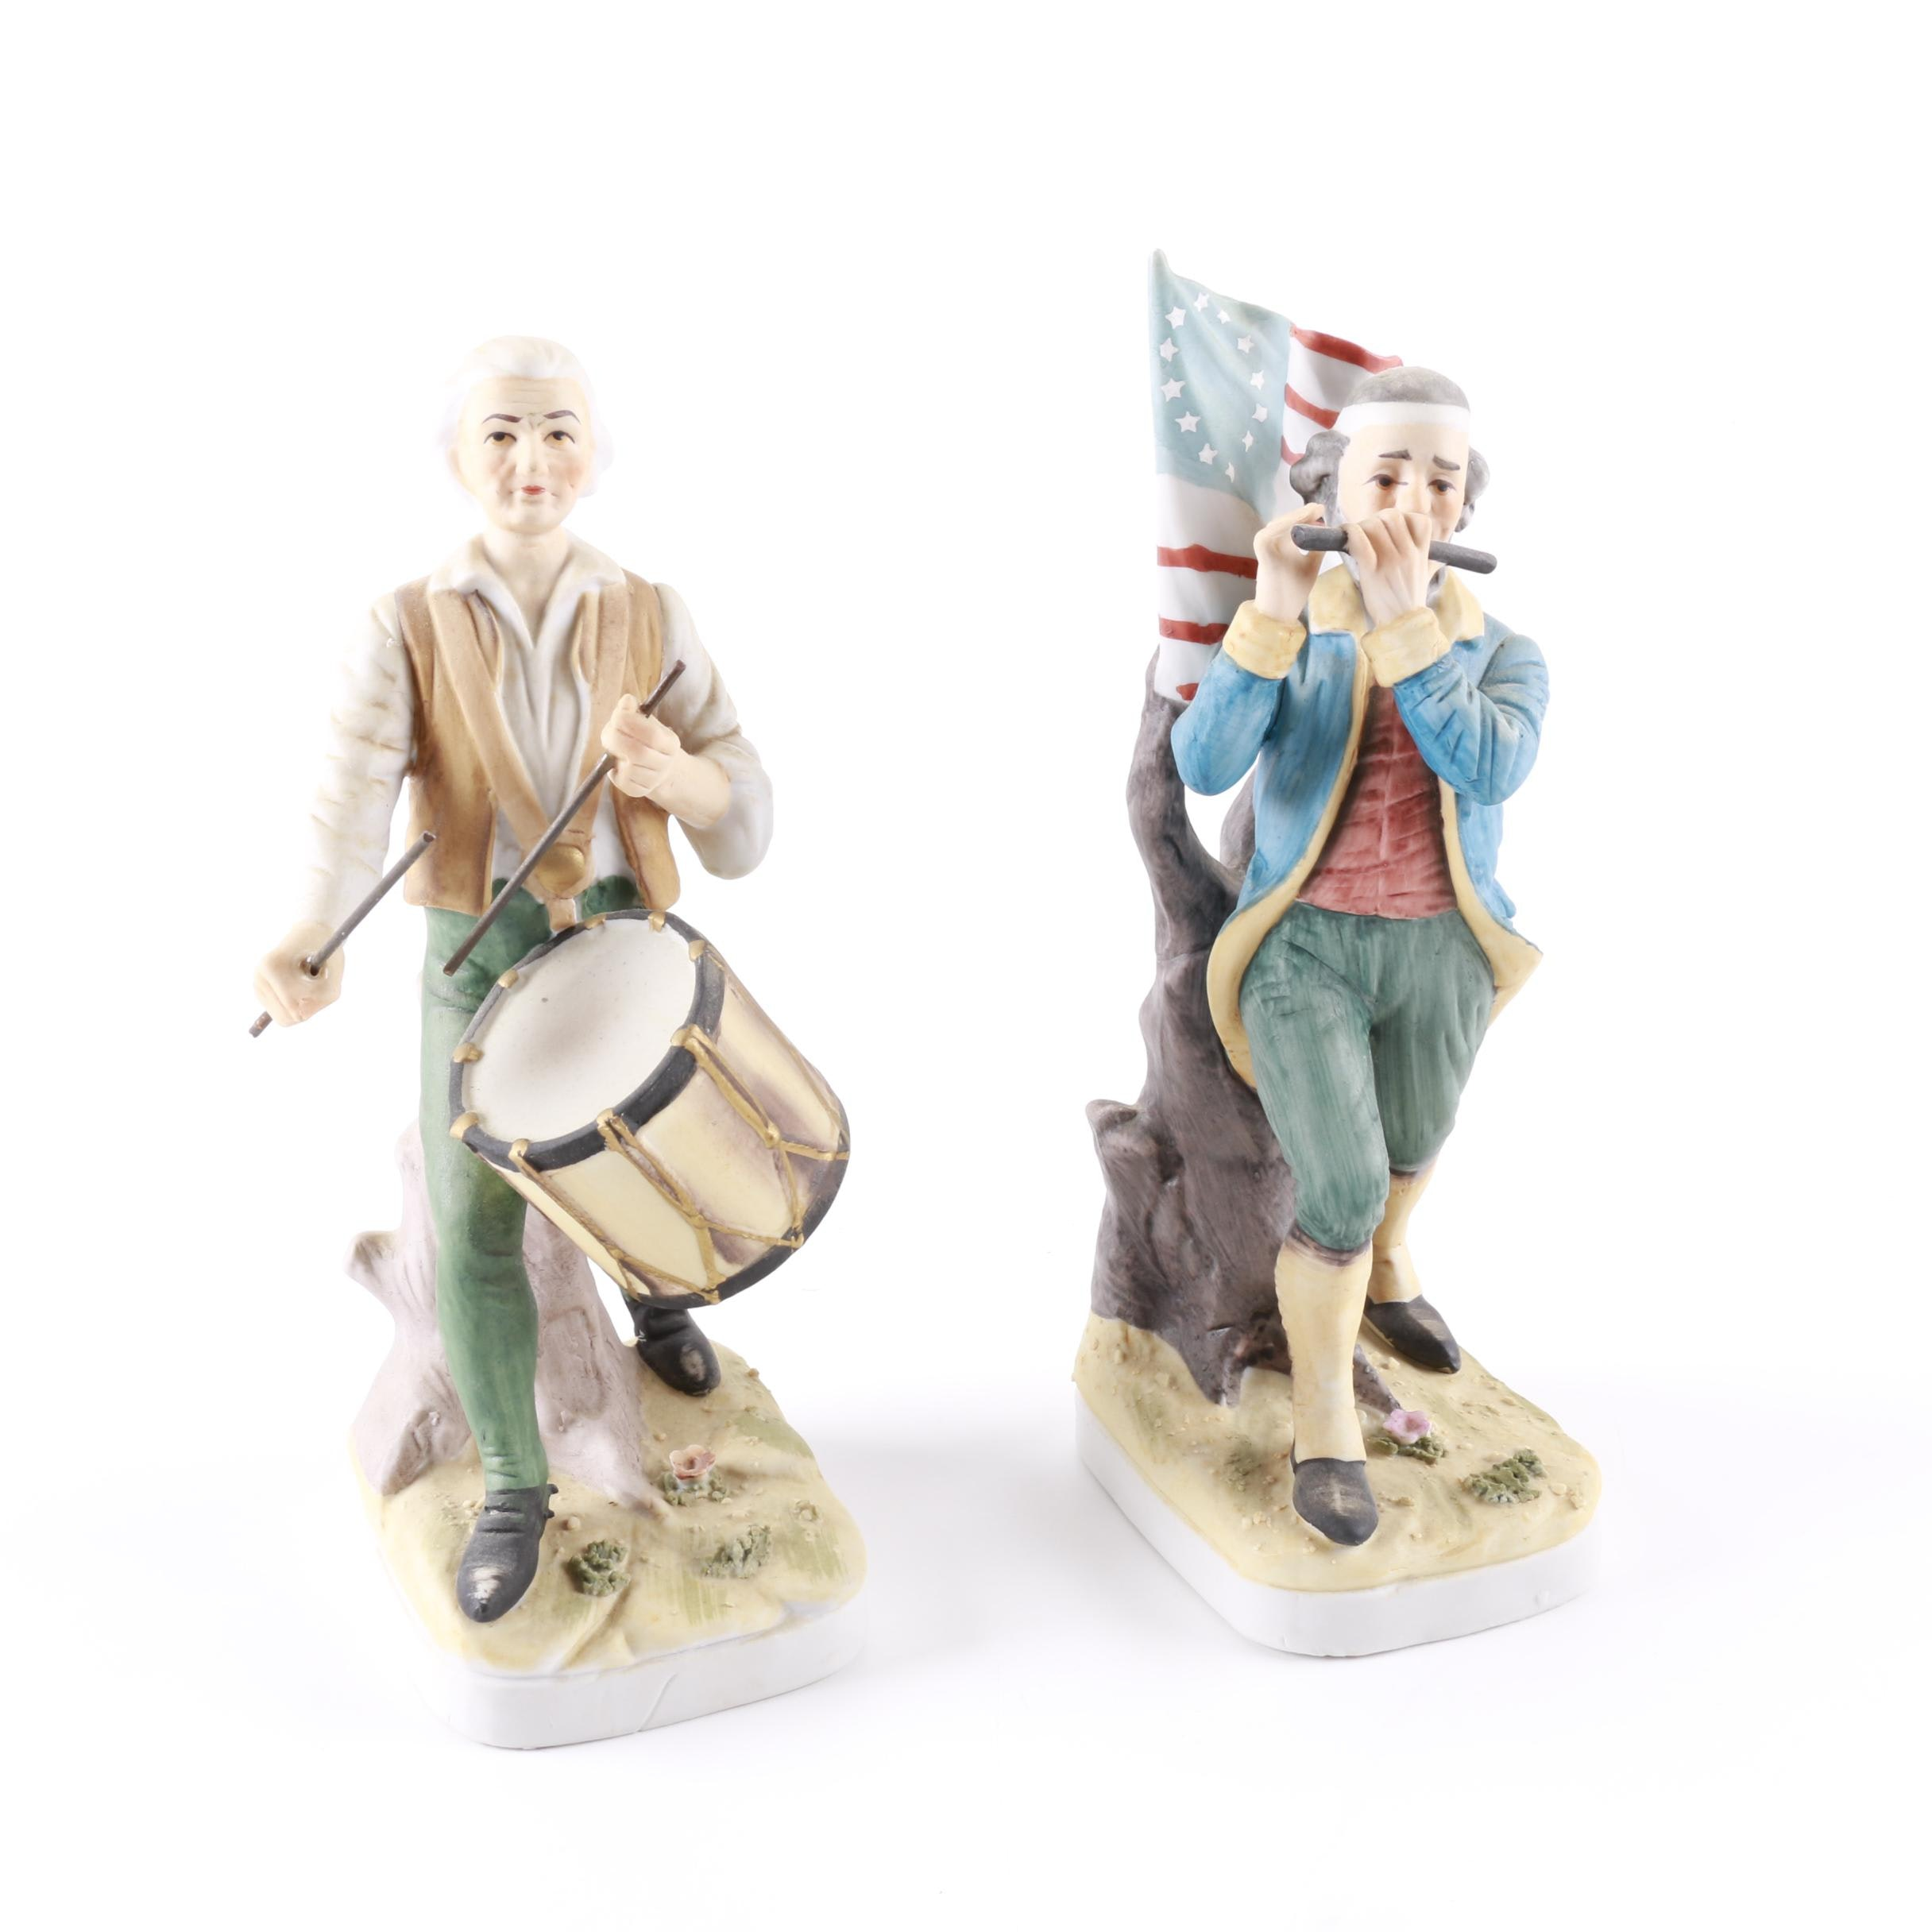 Fifer and Drummer Figurines by Lefton